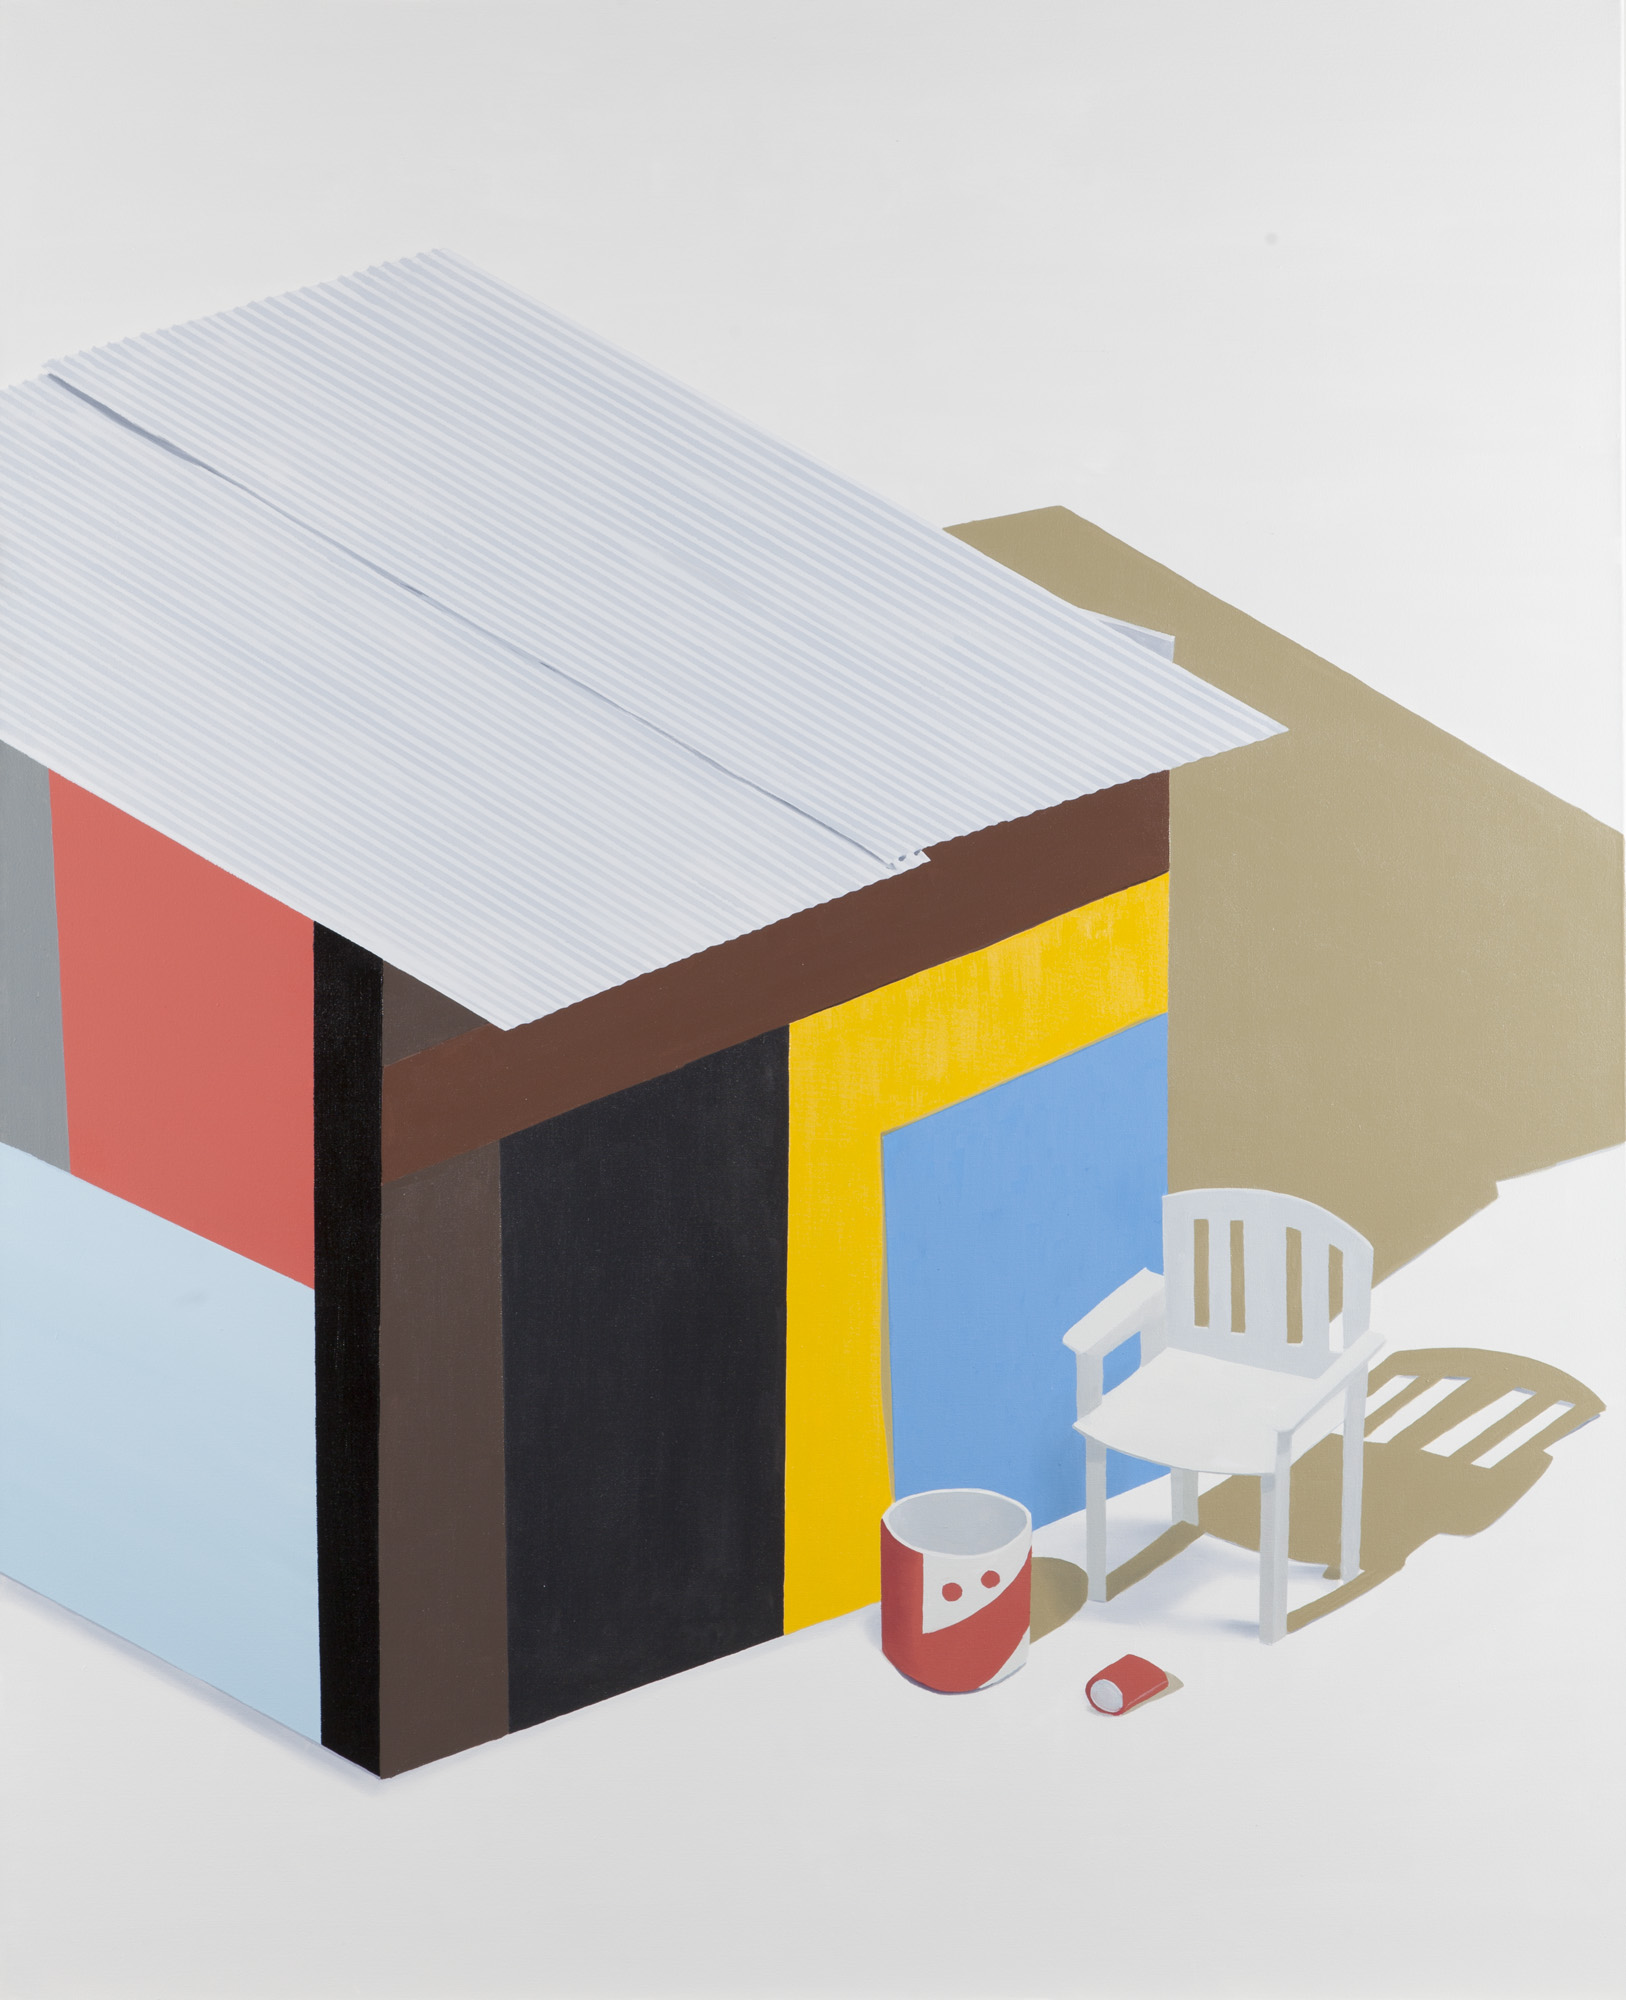 Hut - 2012 - oil on canvas - 160x130cm